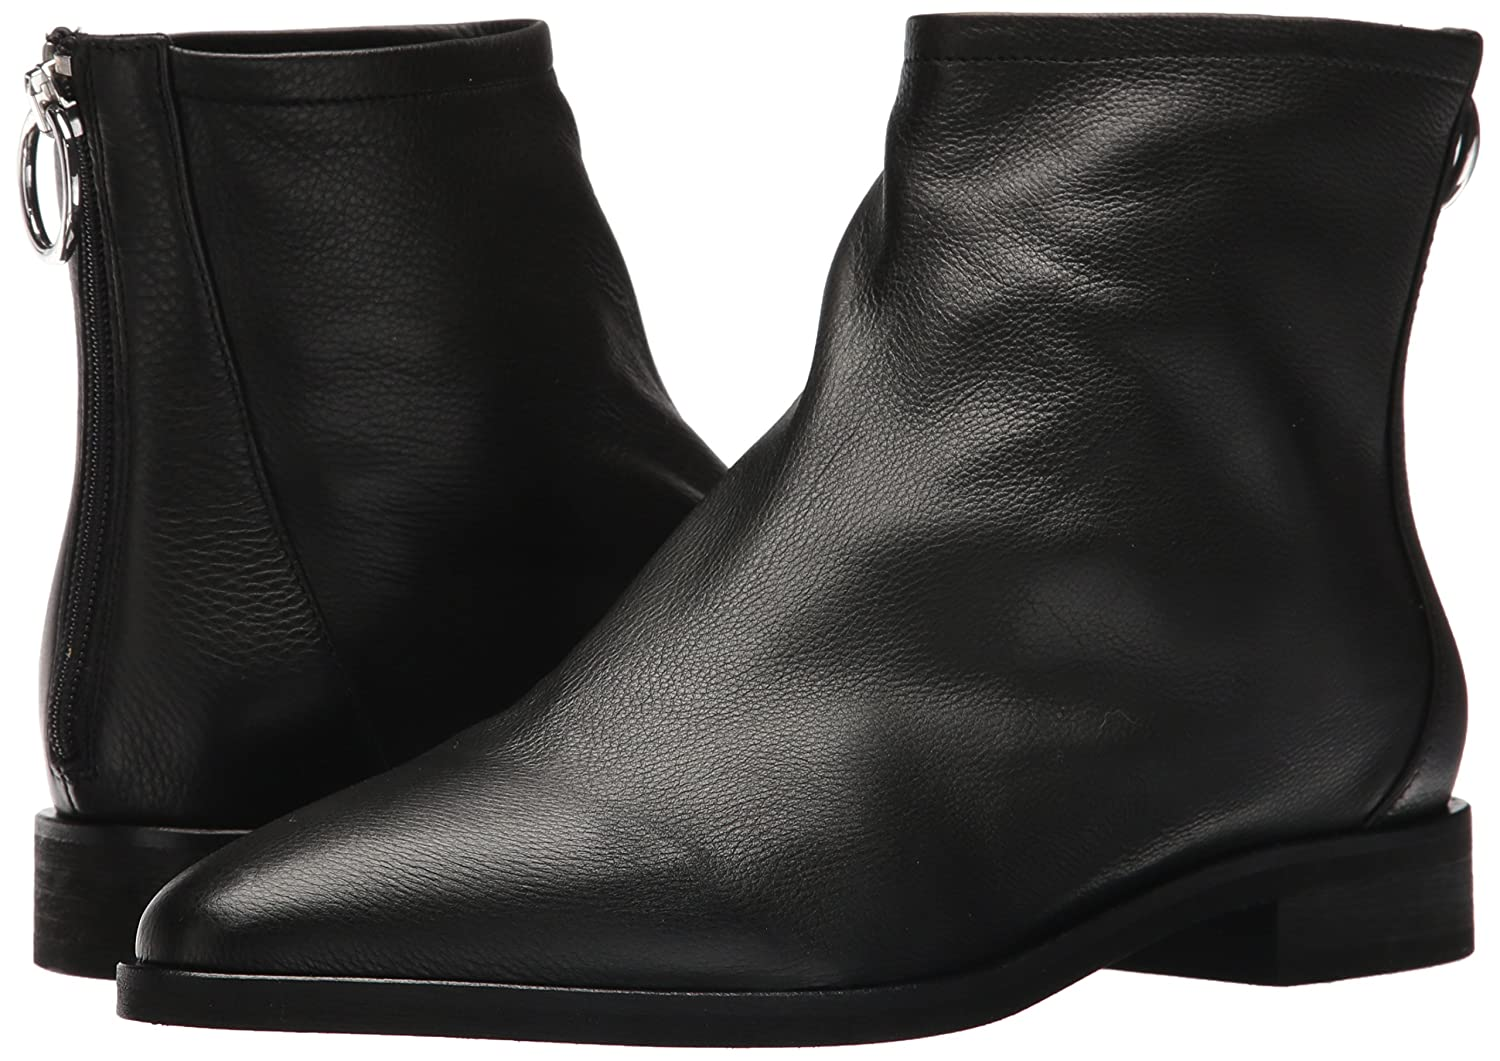 Via Spiga Women's 7.5 Edie Ankle Boot B074CZBH29 7.5 Women's B(M) US|Black Leather 53d6fc